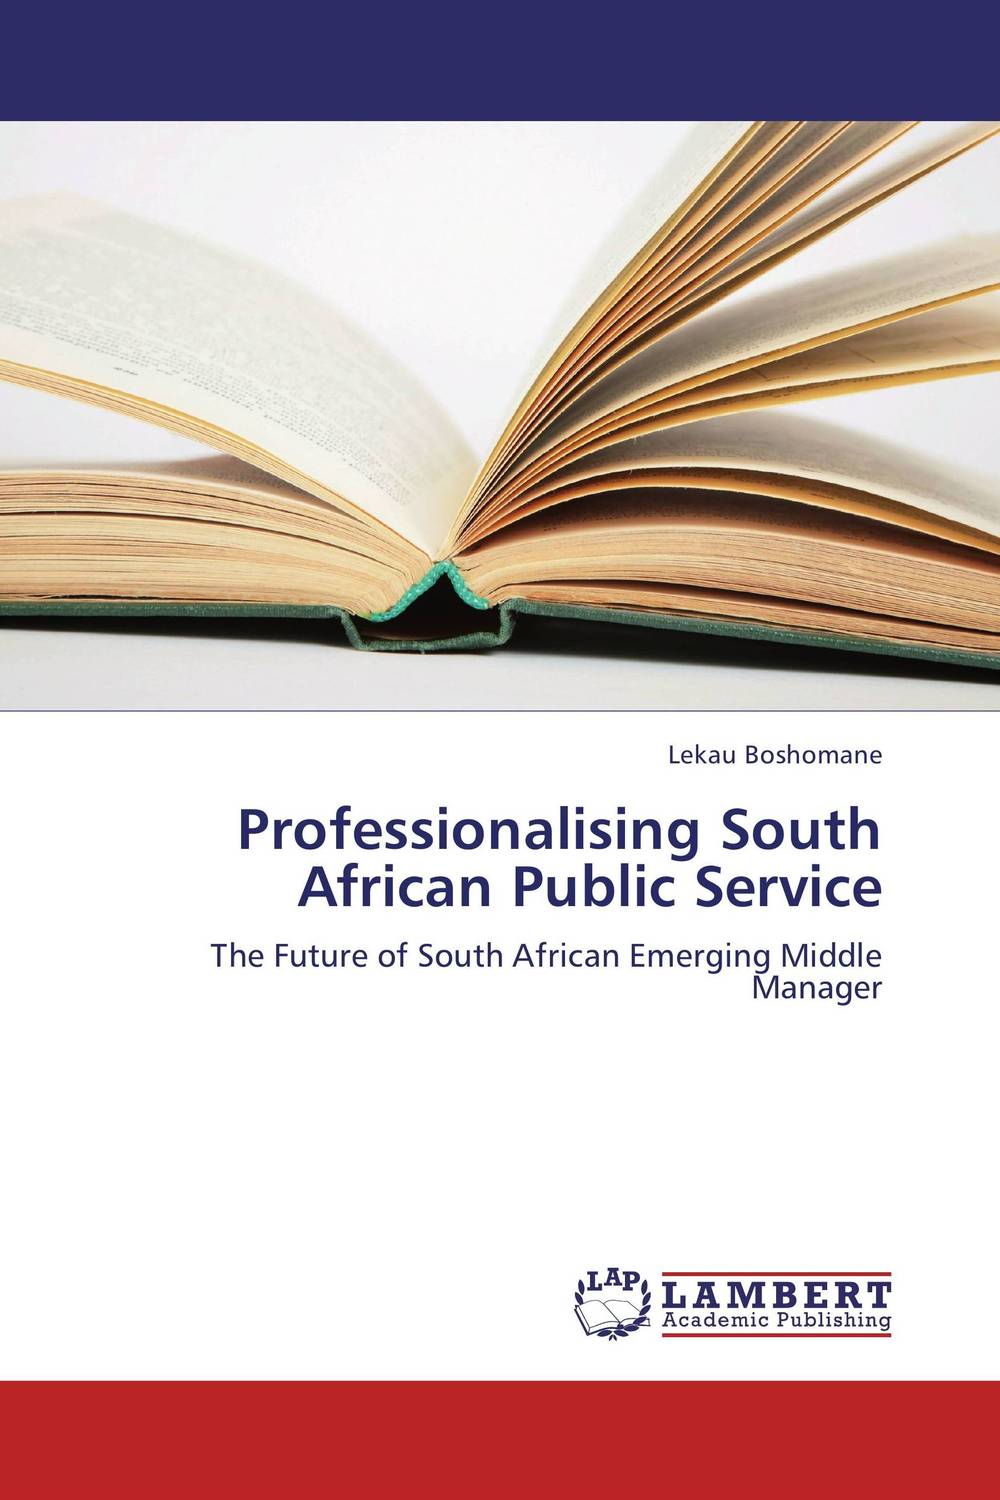 Professionalising South African Public Service translation competence development